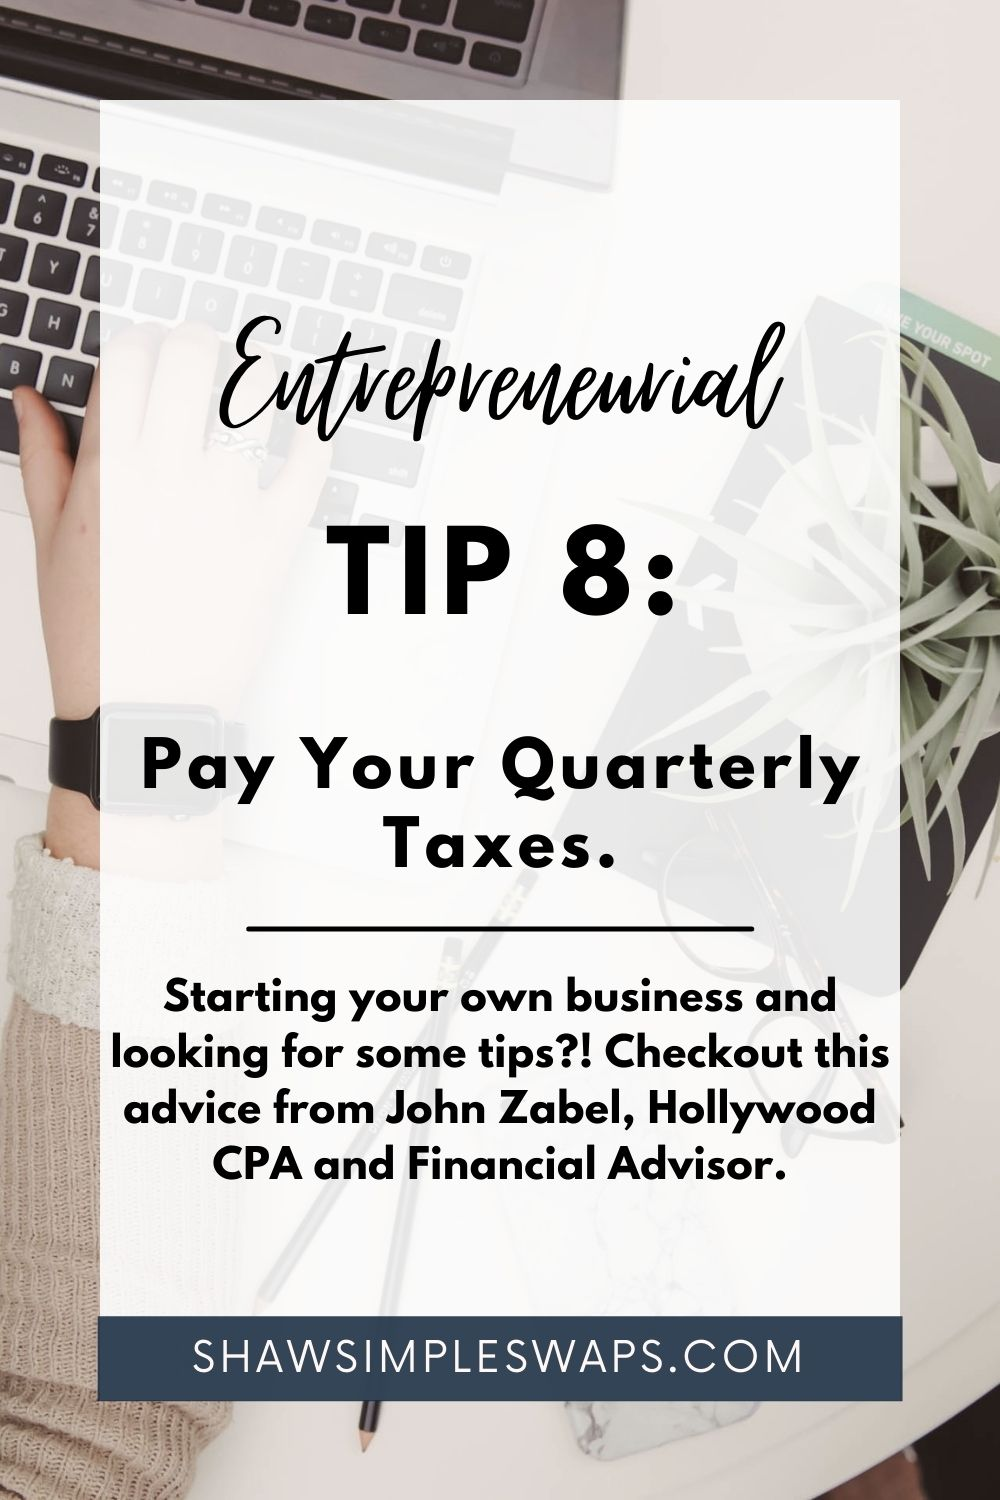 Image with writing for business tips post.